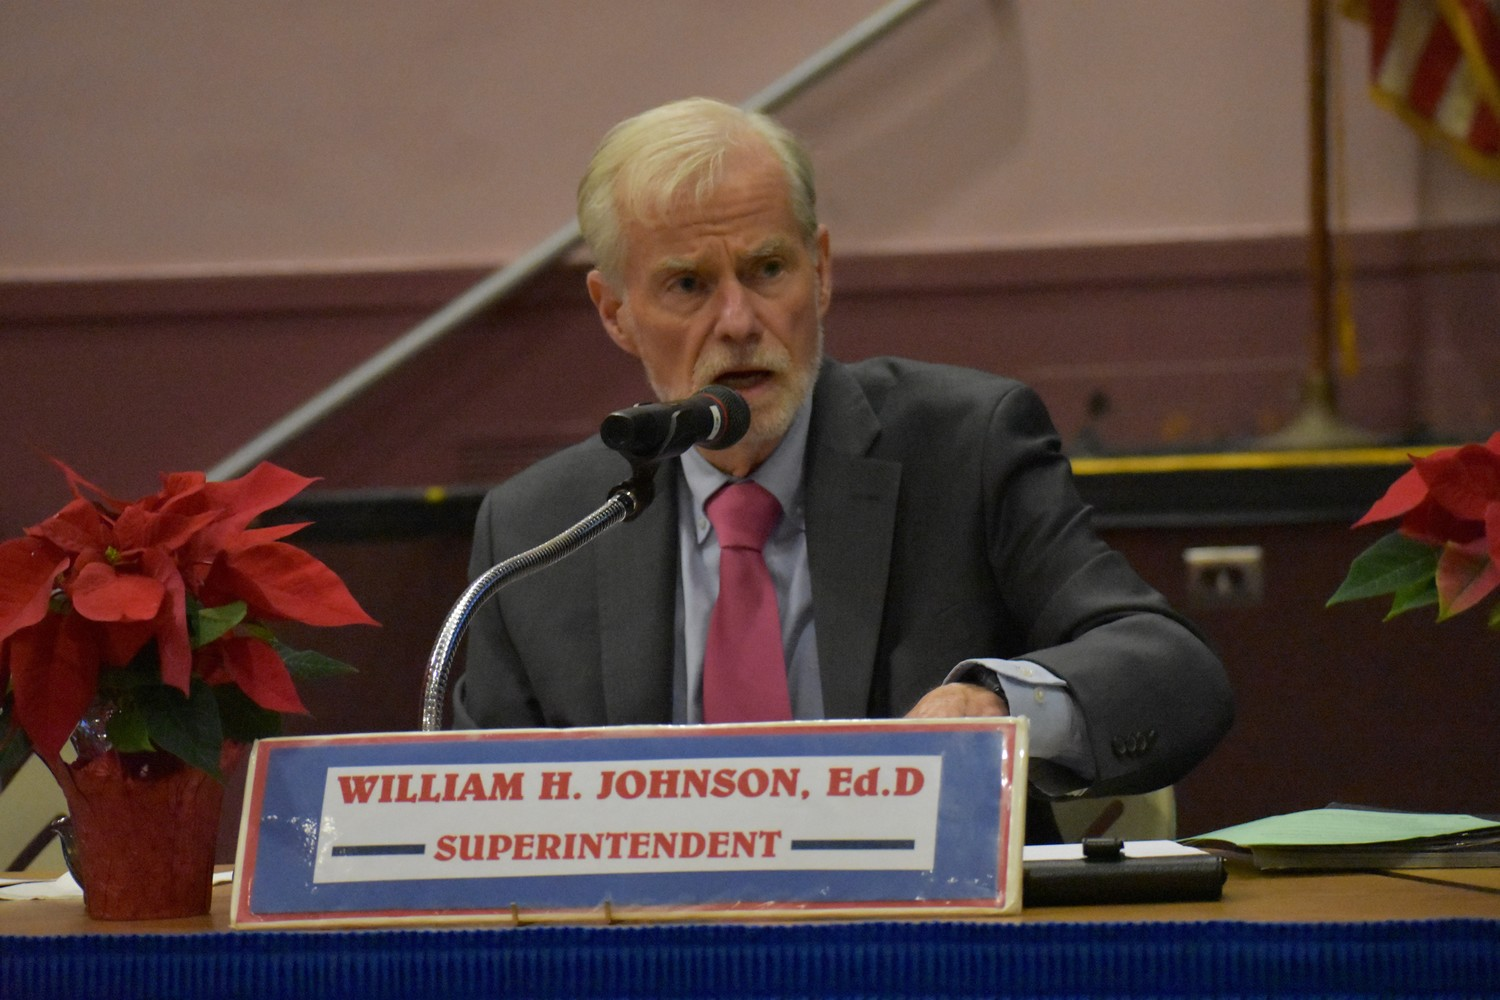 Superintendent Dr. William Johnson said that integrating different students into one classroom benefits everyone.